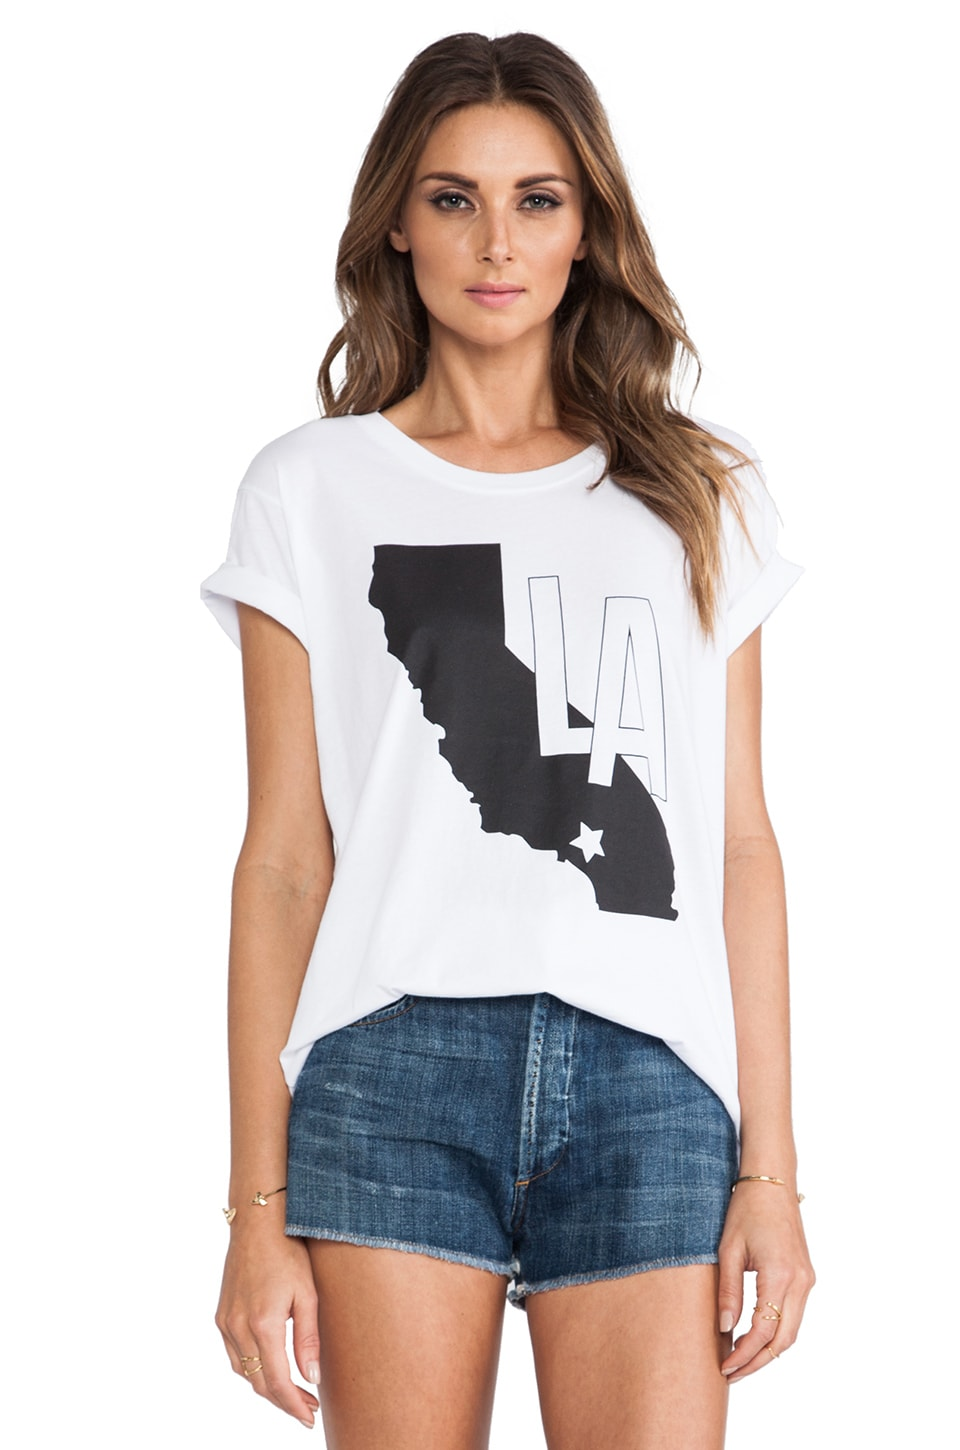 Lovers + Friends LA California Tee in White